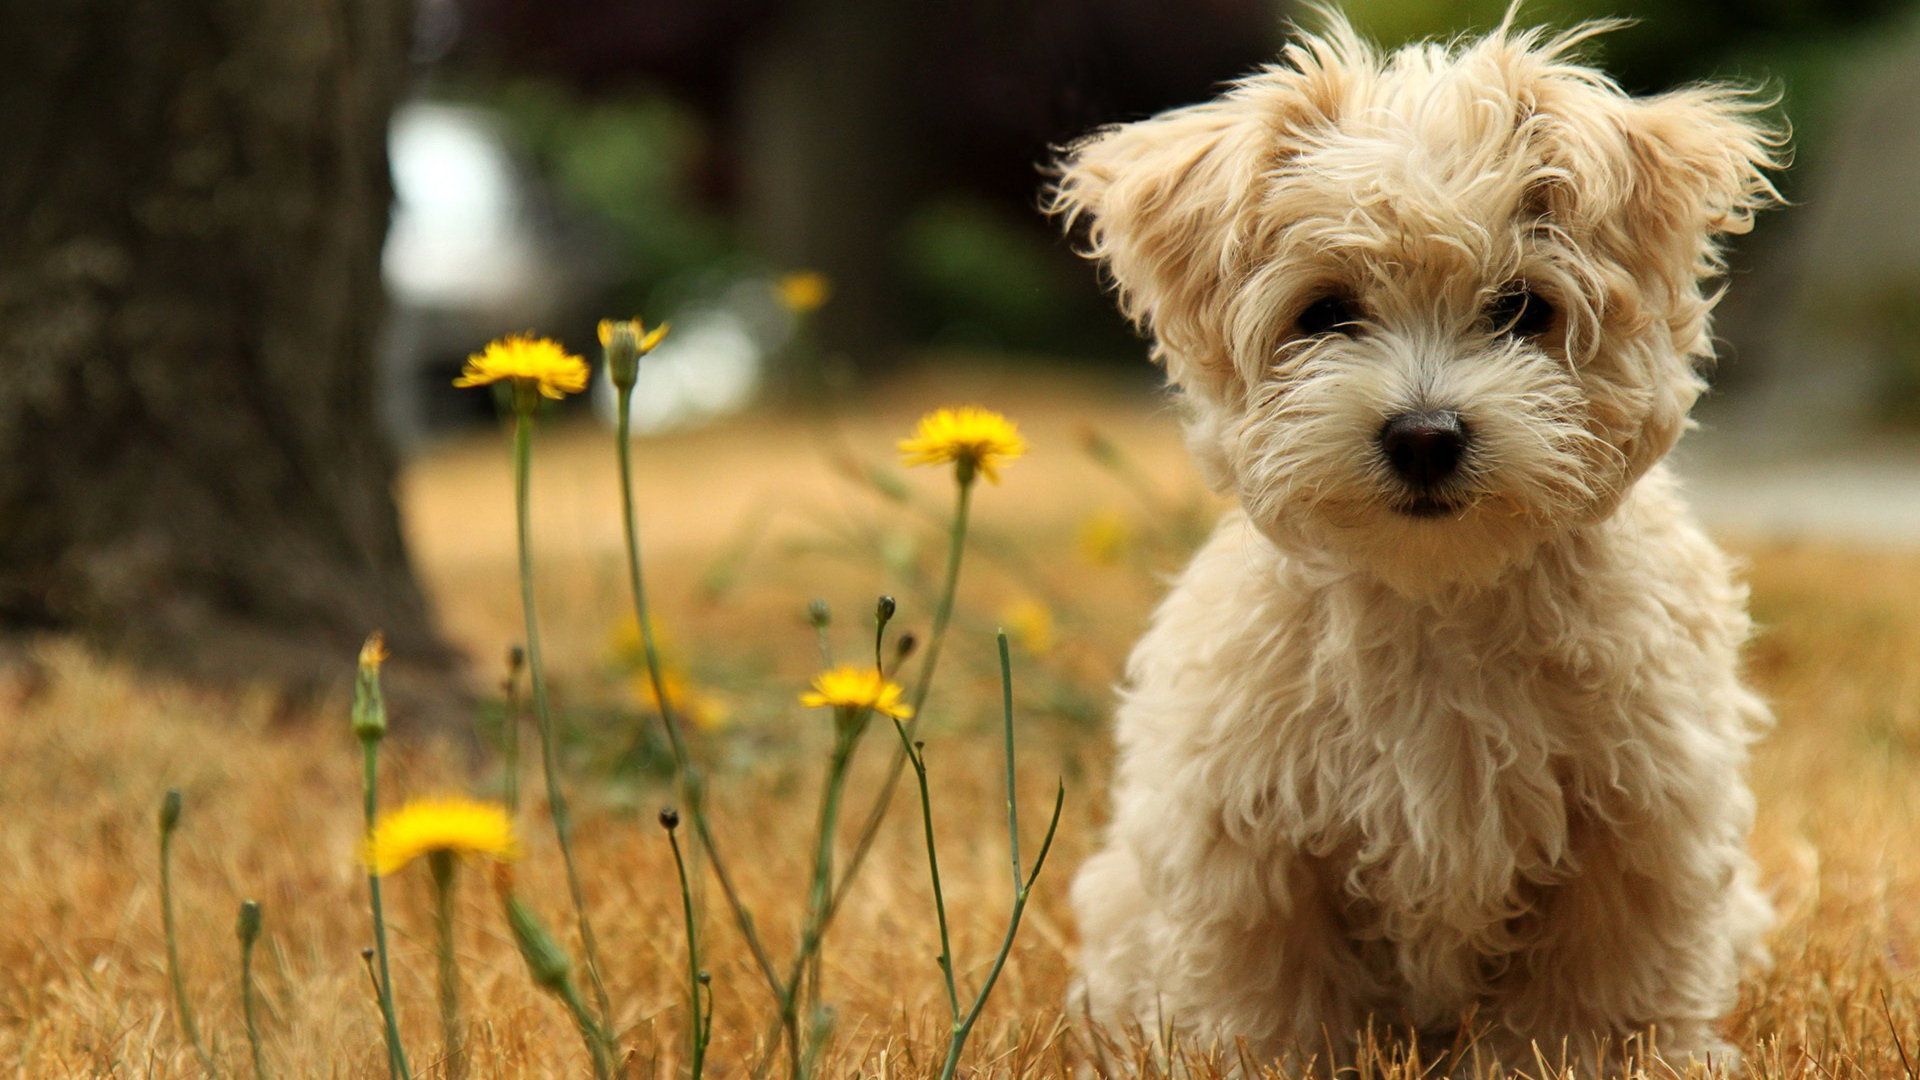 Undefined Nice Laptop Backgrounds 40 Wallpapers Adorable Wallpapers Bear Dog Breed Cute Animals Teddy Bear Dog